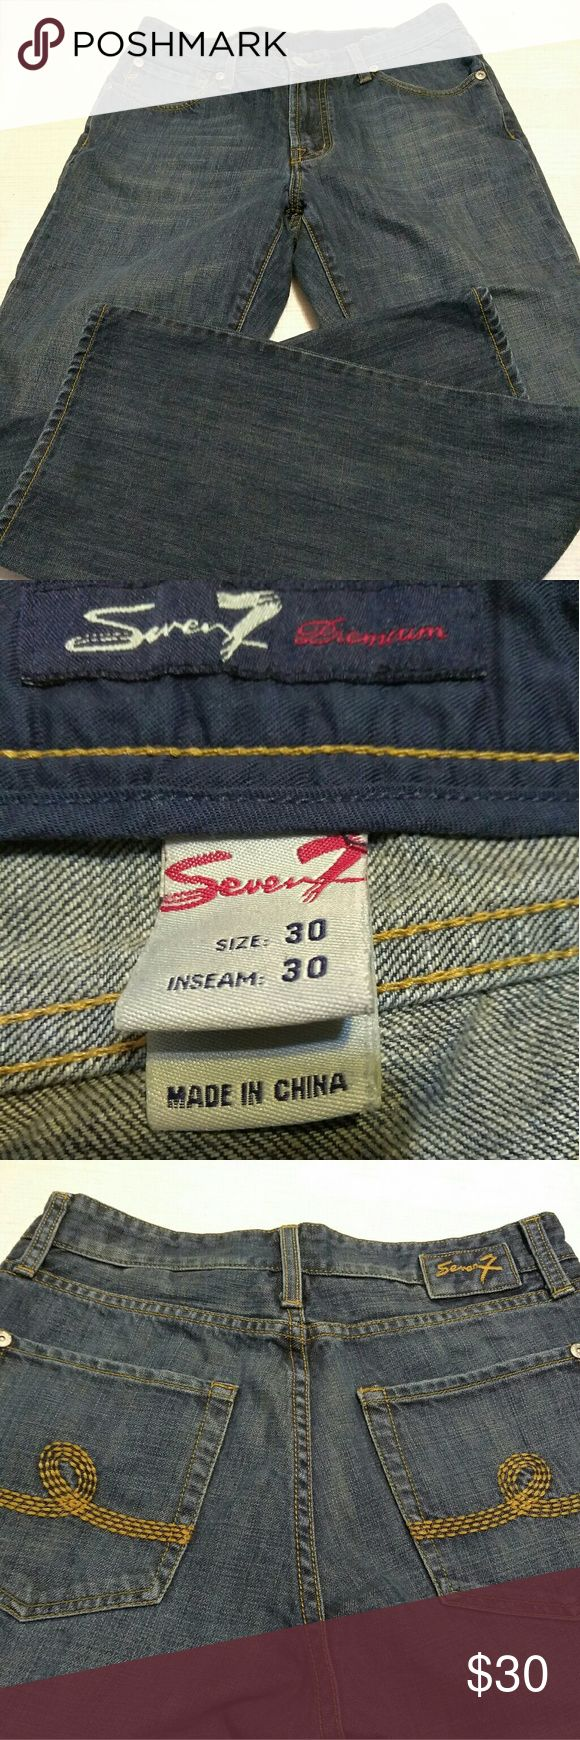 Men's Seven7 Jeans Men's size 30x30 Seven7 jeans.  Excellent used condition. Seven7 Jeans Straight